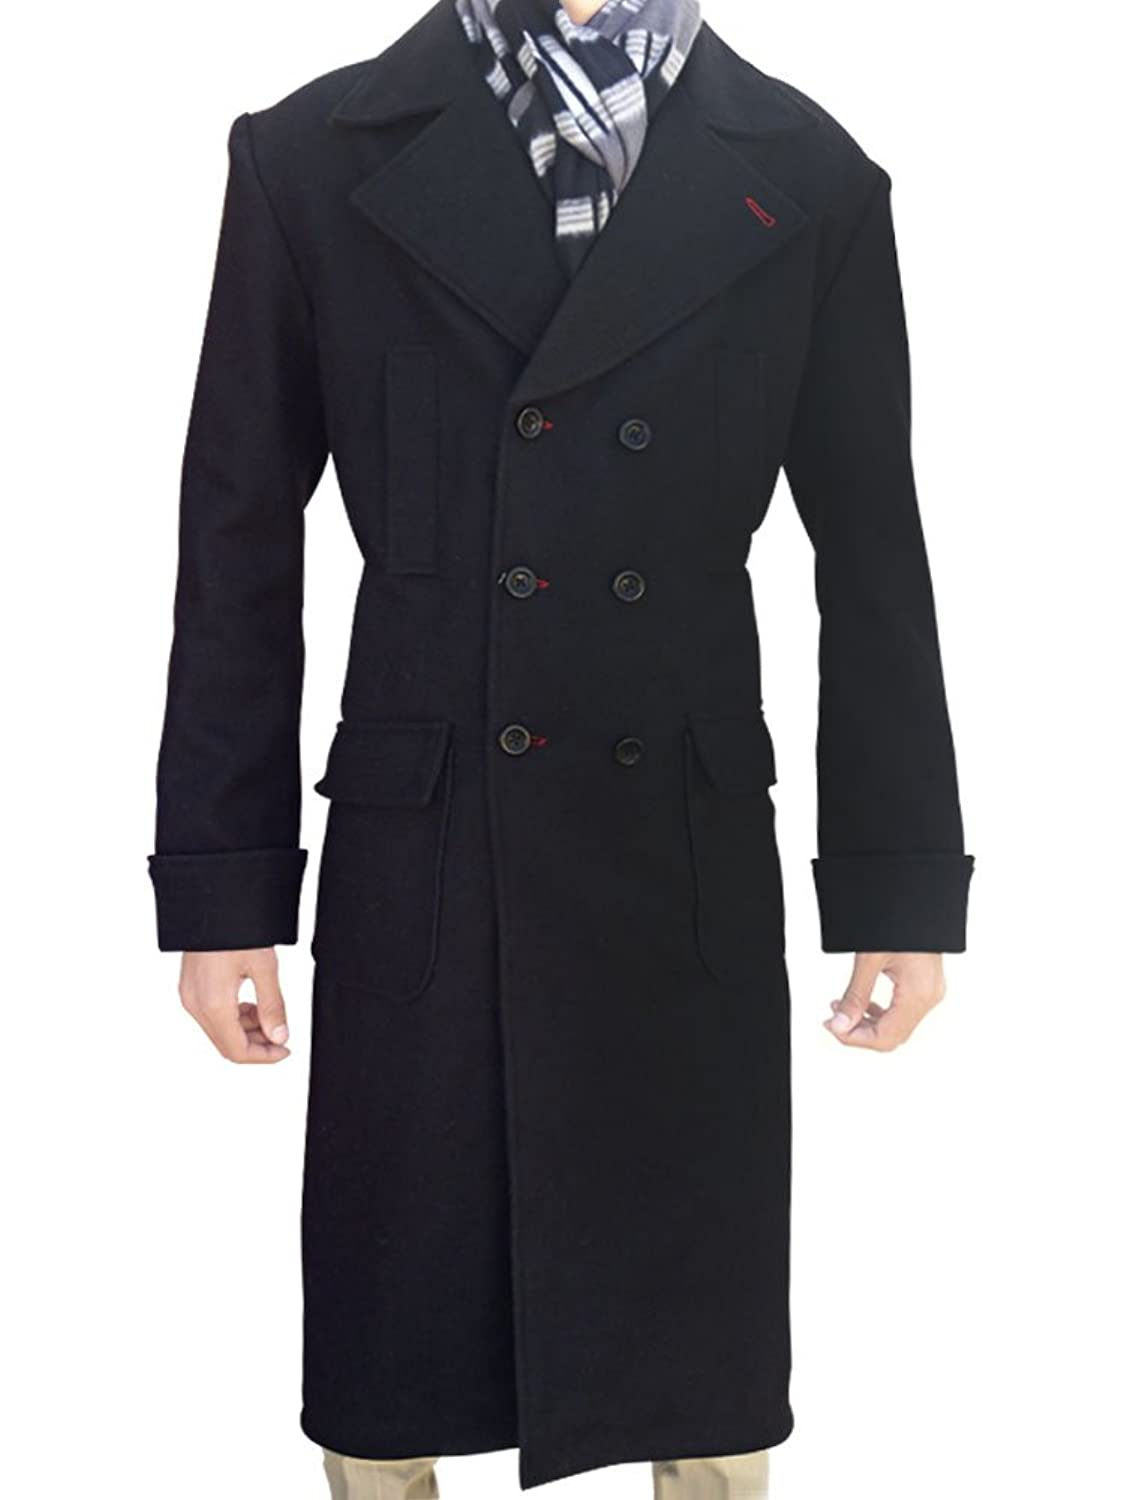 Outfitter Jackets Men's Wool Cape Sherlock Holmes Coat at Amazon